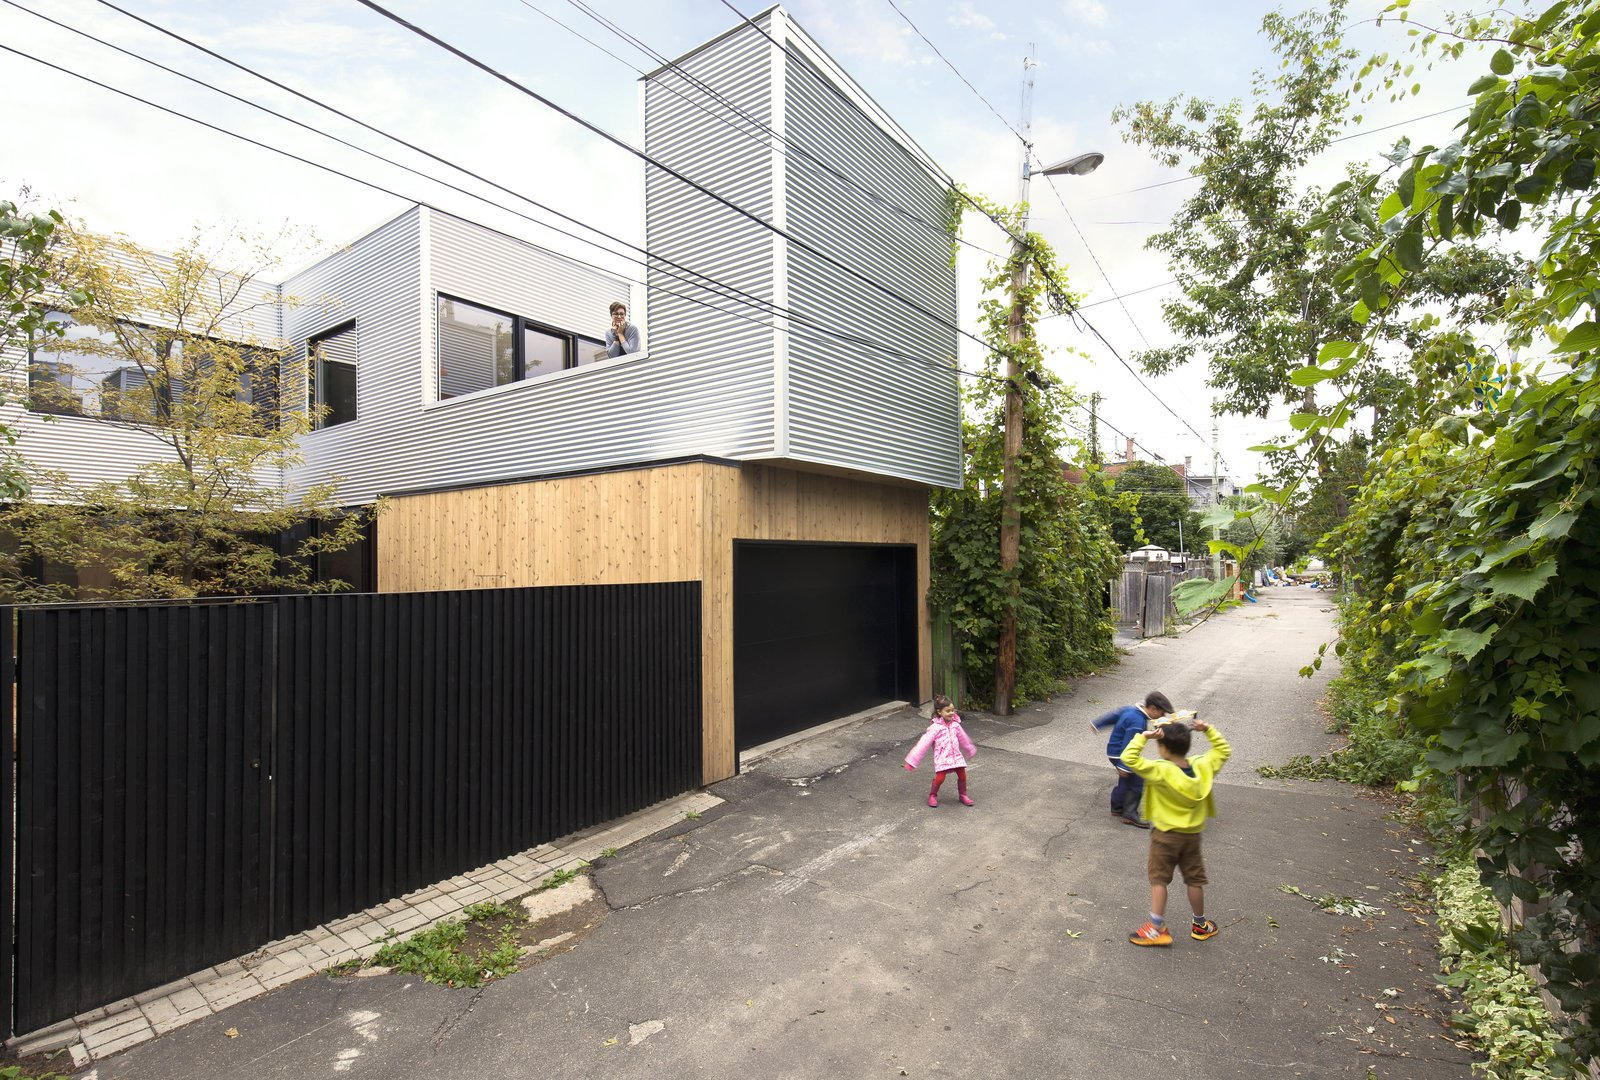 The architects cut away a section of the second floor to make room for a patio. The exterior has been clad in corrugated galvanized steel and cedar planks.  Best Photos